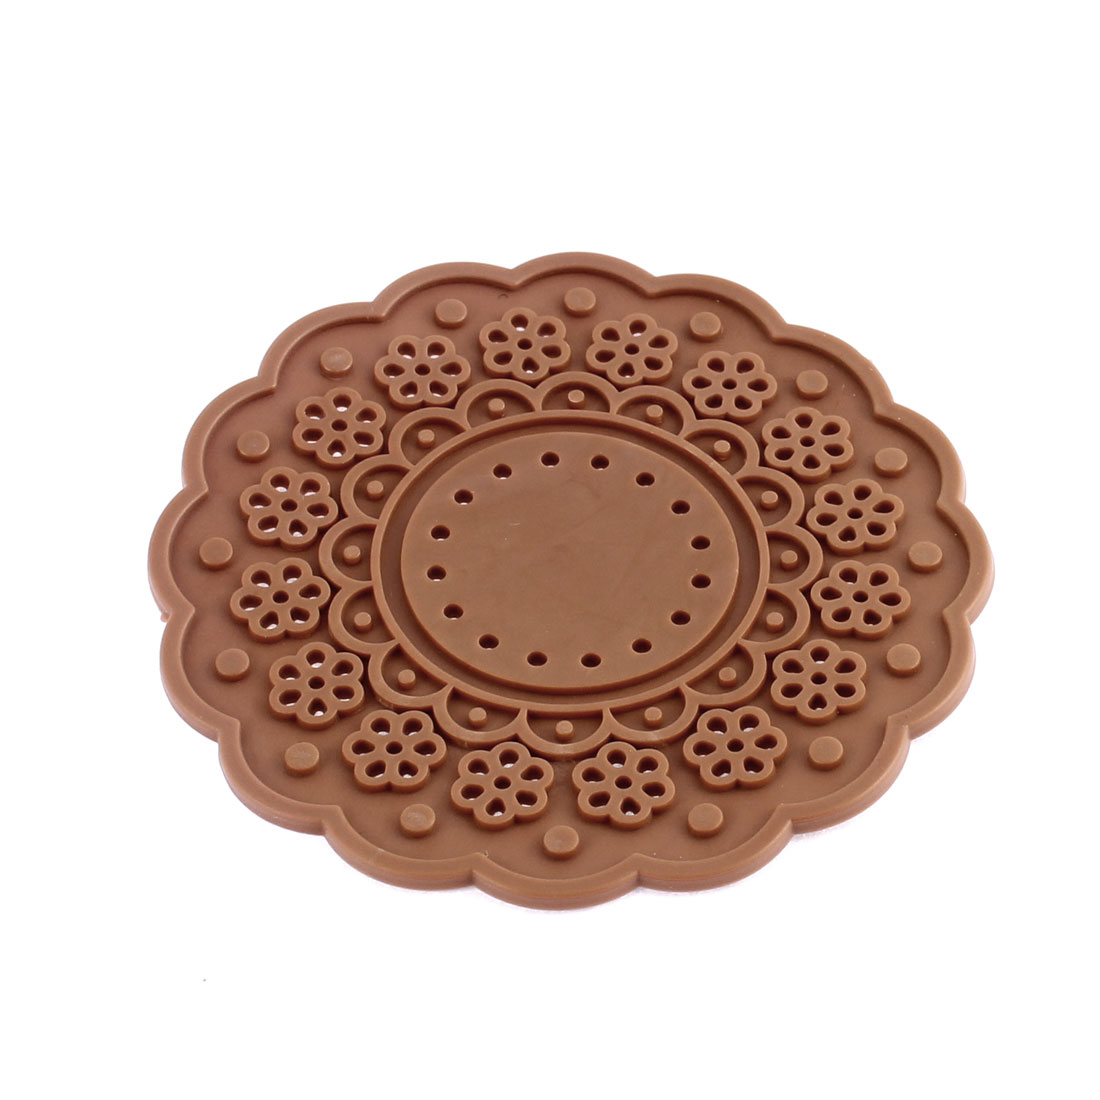 Coffee Color Silicone Lace Doily Coasters Drink Tea Cup Mat 10cm Dia